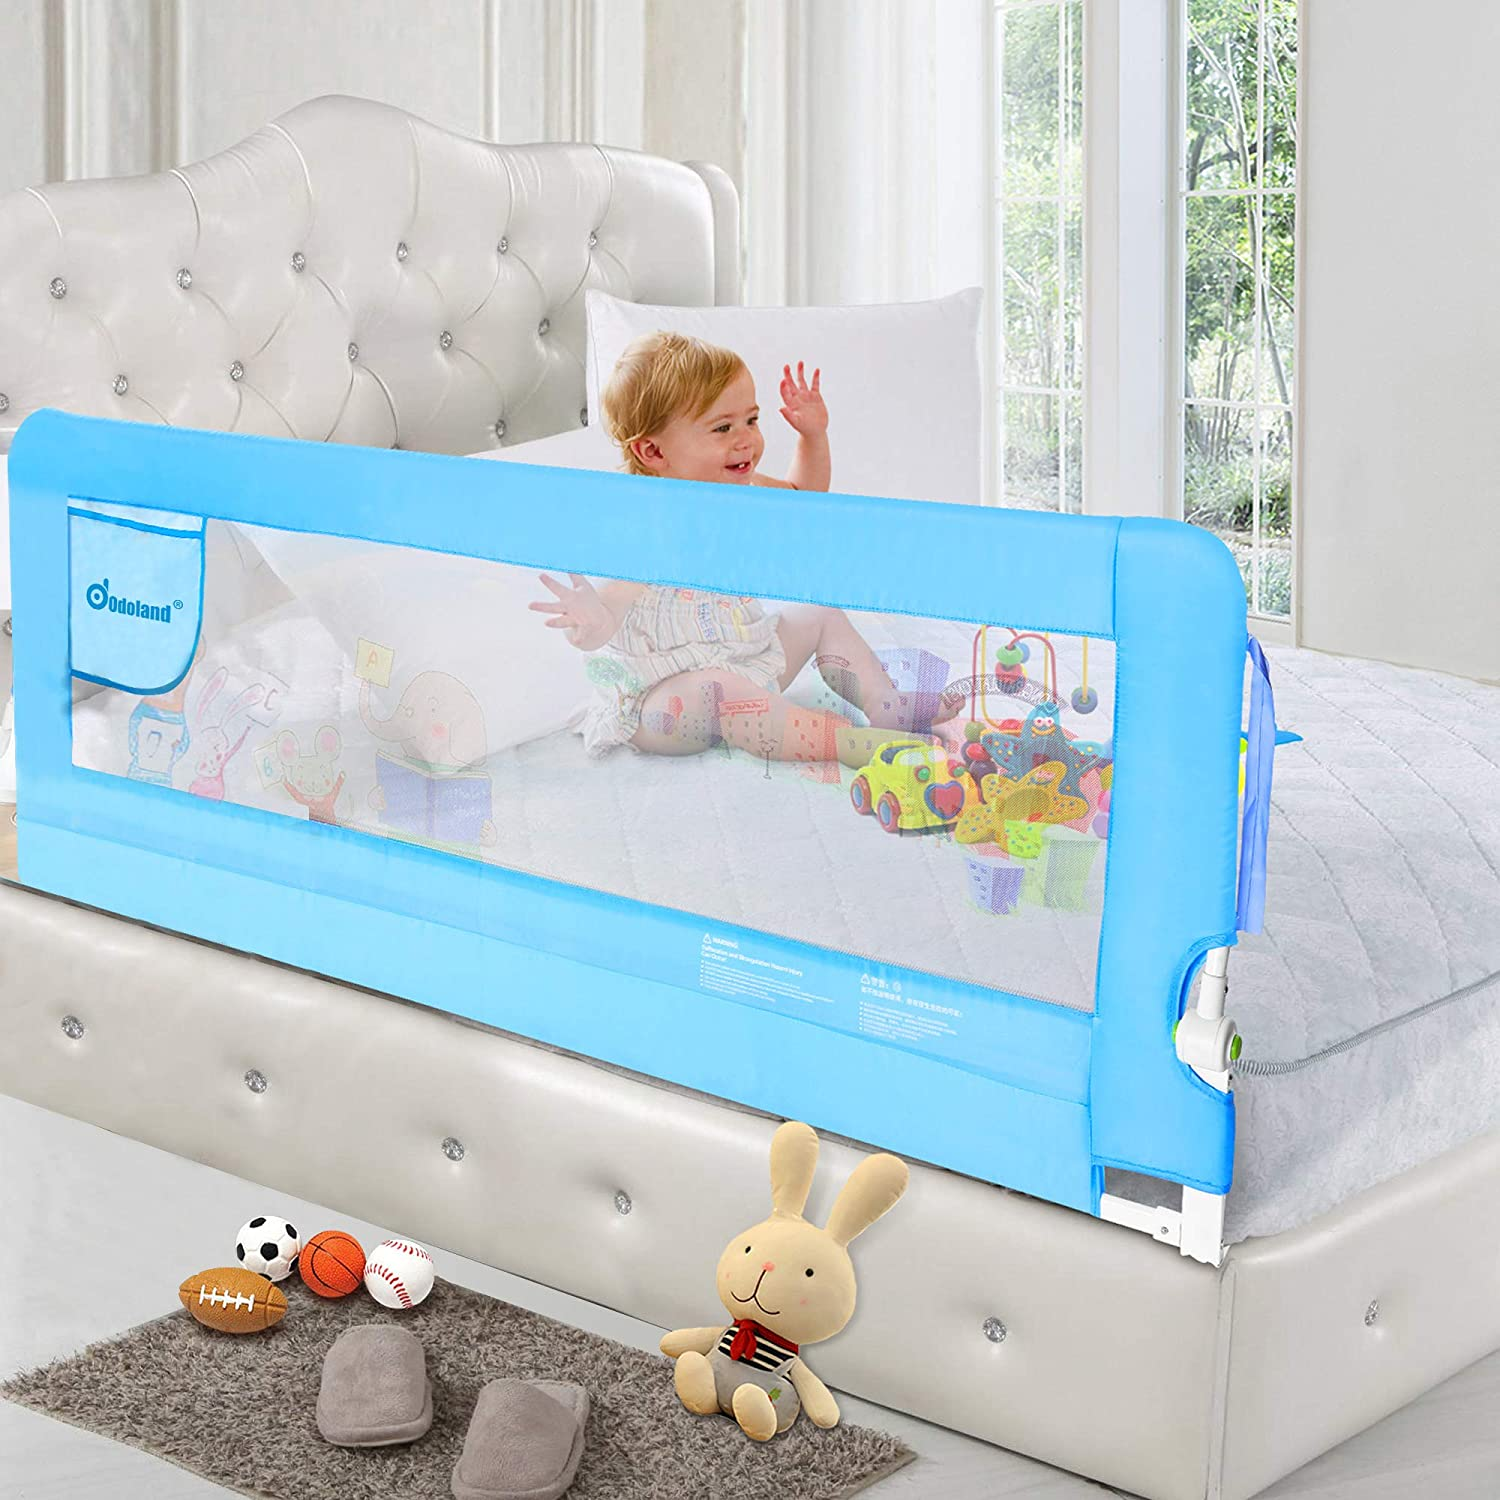 ODOLAND 70in Bed Rail for Toddlers, Swing Down Safety Bed Rails Extra Long Bed Rails Guard Mesh Guard Rails for Convertible Crib, Kids Twin, Double, Full Size Queen King Mattress, Blue (1 Pack)